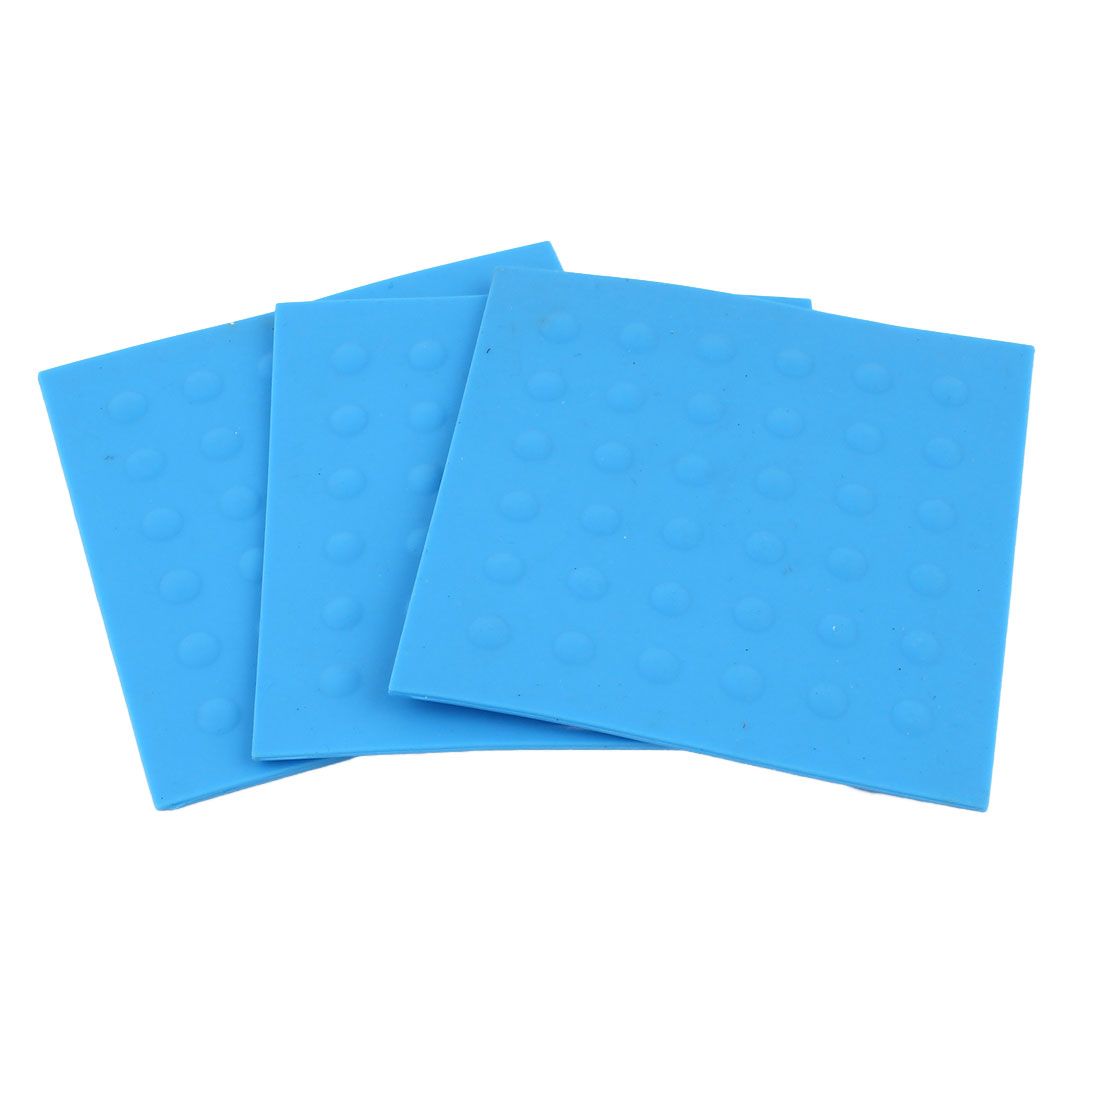 3 Pcs Soft Rubber Nonslip Mug Beverage Coaster Cushion Mat Placemat Pad Blue